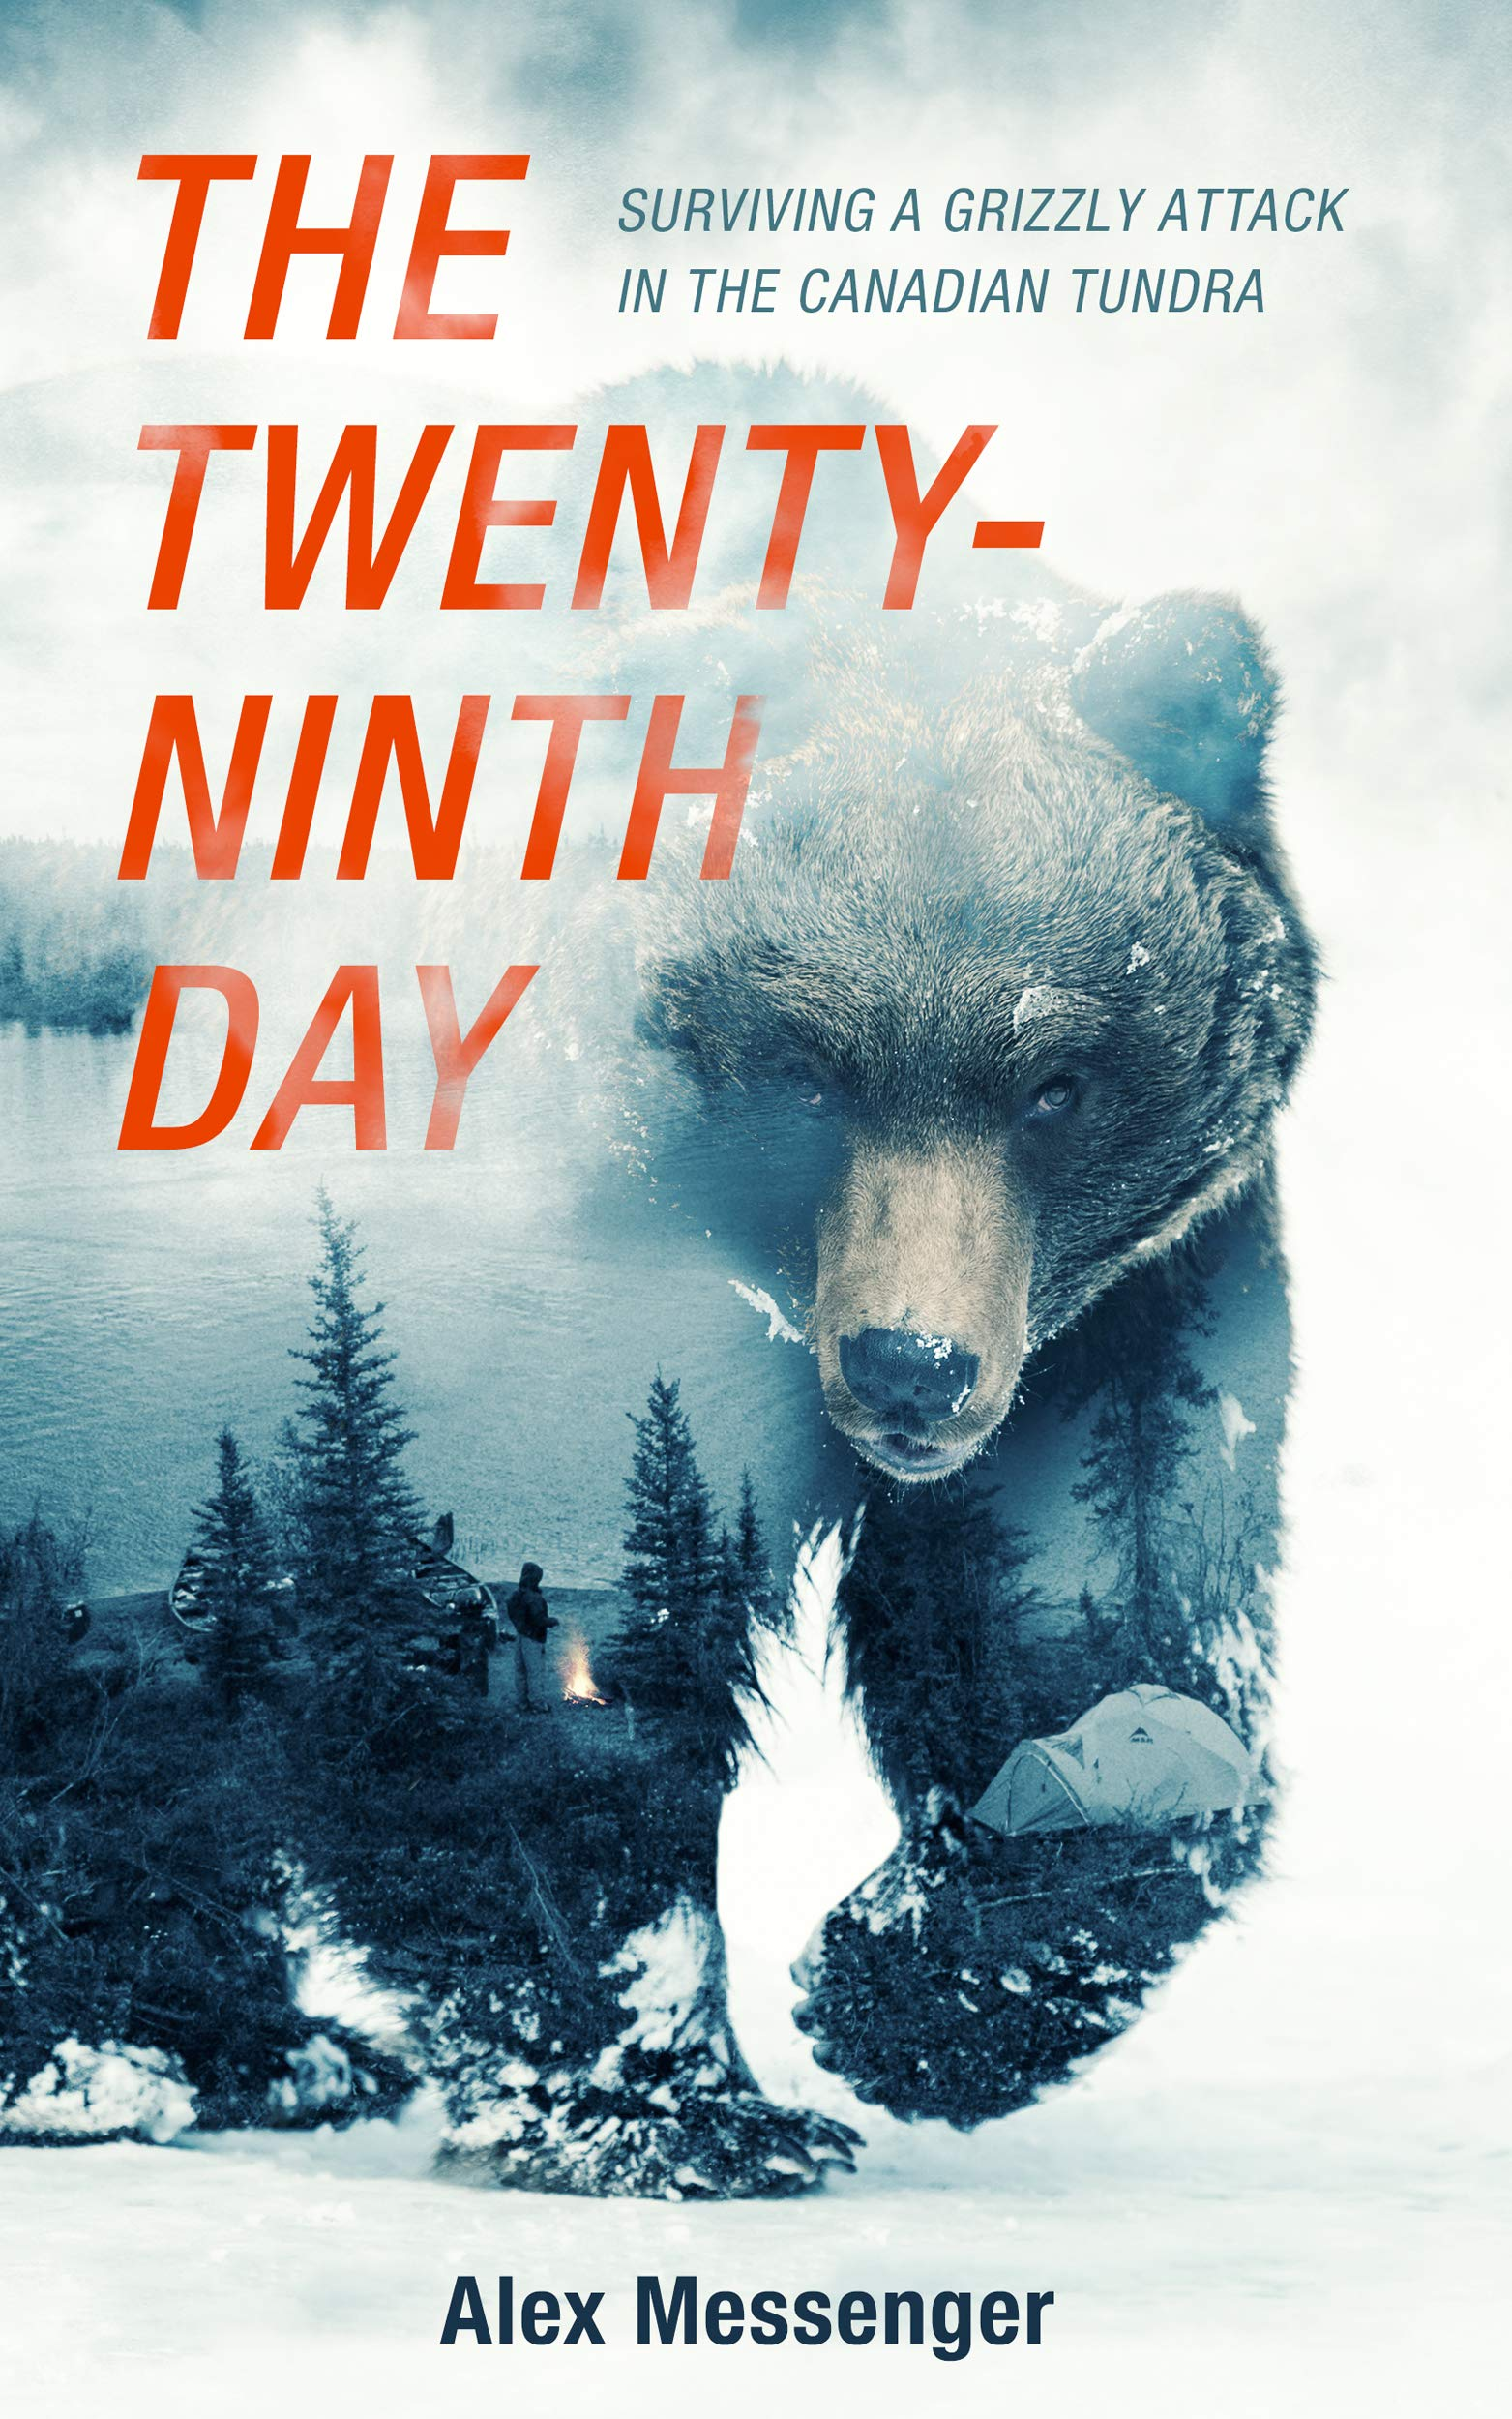 The Twenty-ninth Day: Surviving a Grizzly Attack in the Canadian Tundra by Blackstone Publishing